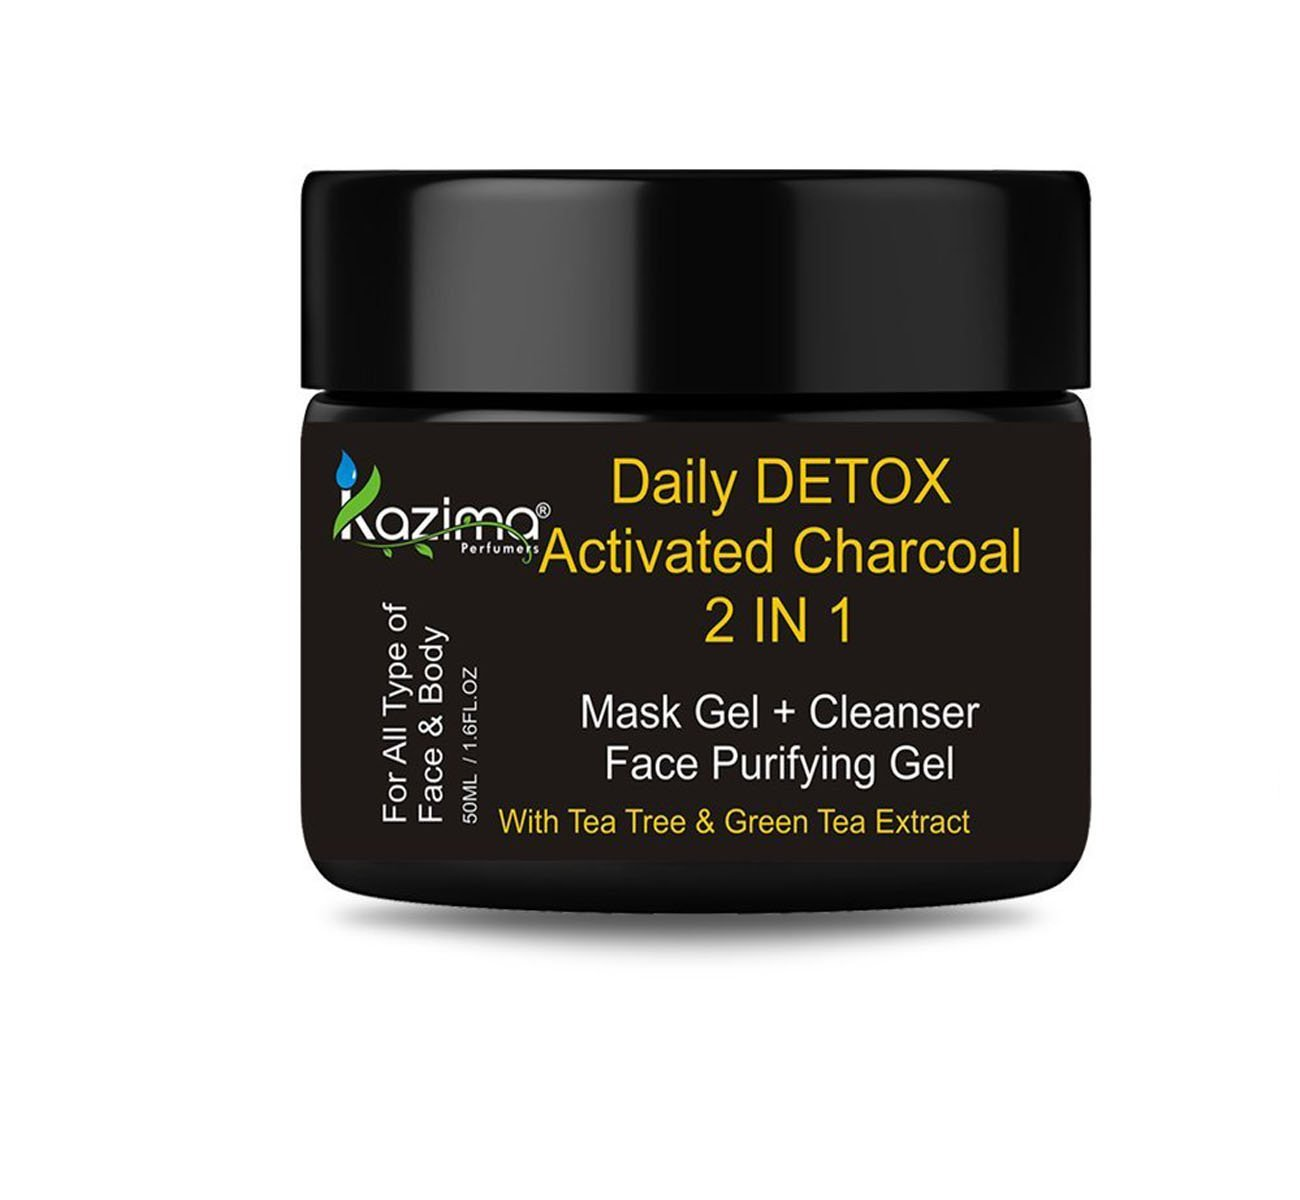 KAZIMA Daily DETOX Activated Charcoal 2 IN 1 Mask Gel + Cleanser Face Purifying Gel - Nourishment & Skin Refresh & Soft With Tea Tree & Green Tea Extract (50ML)